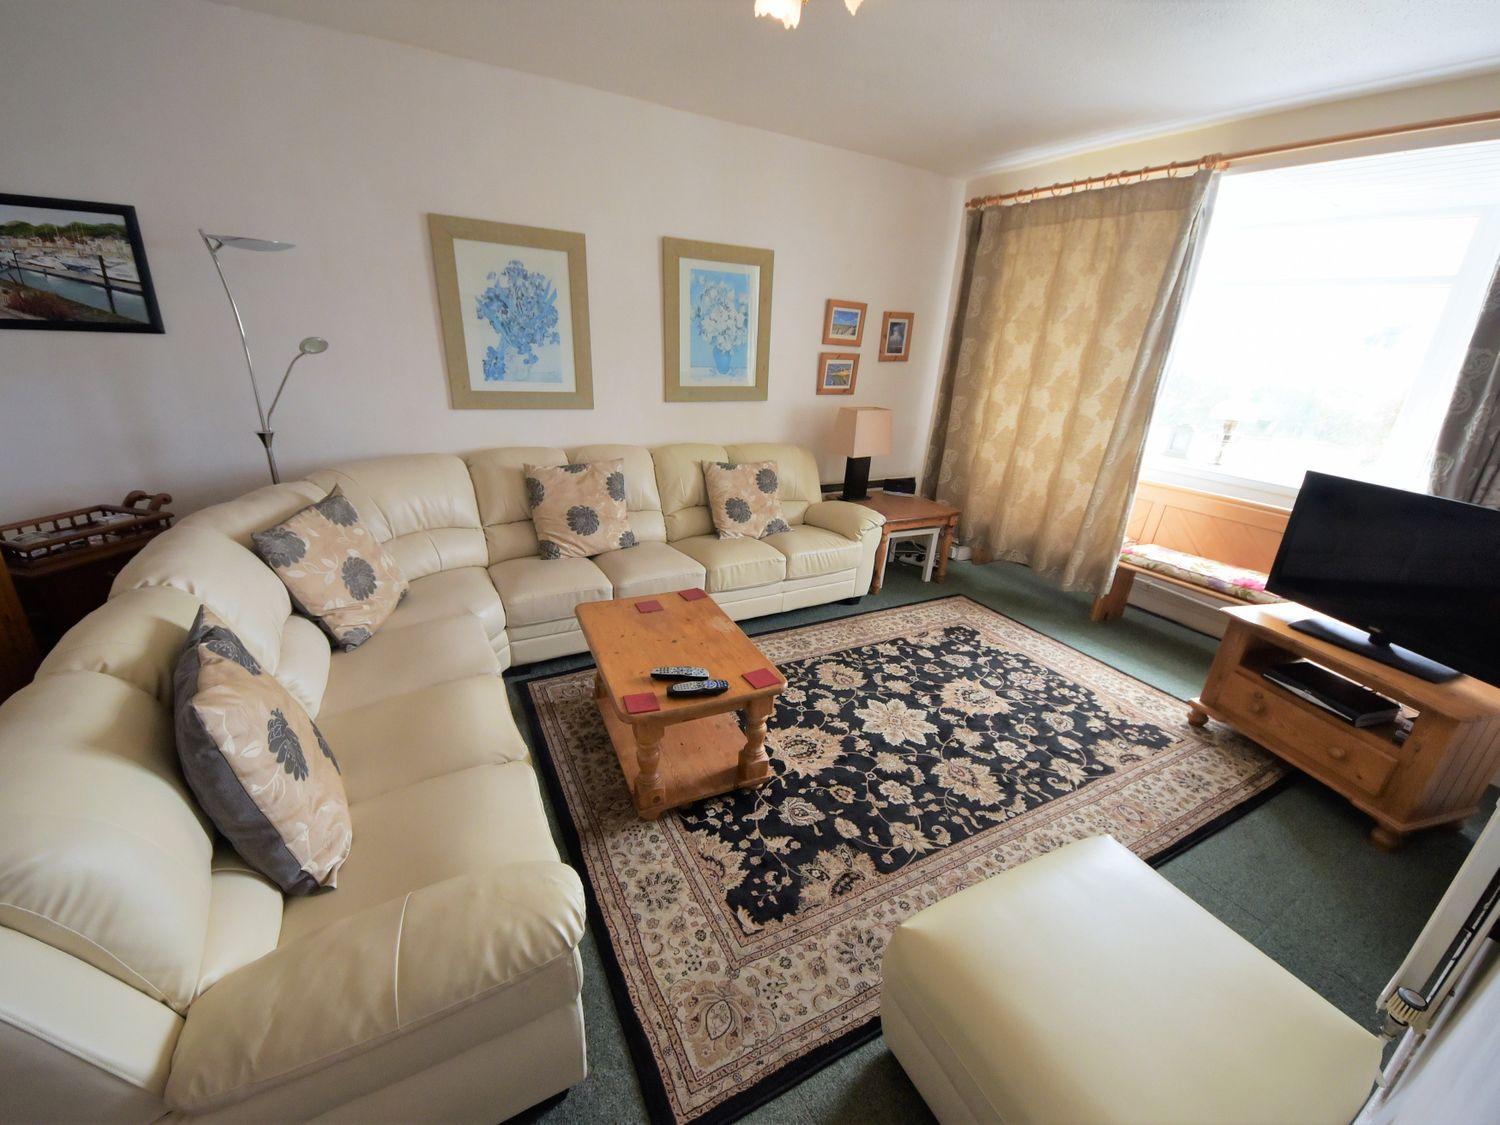 King Arthur Suite in Trearddur - sleeps 6 people